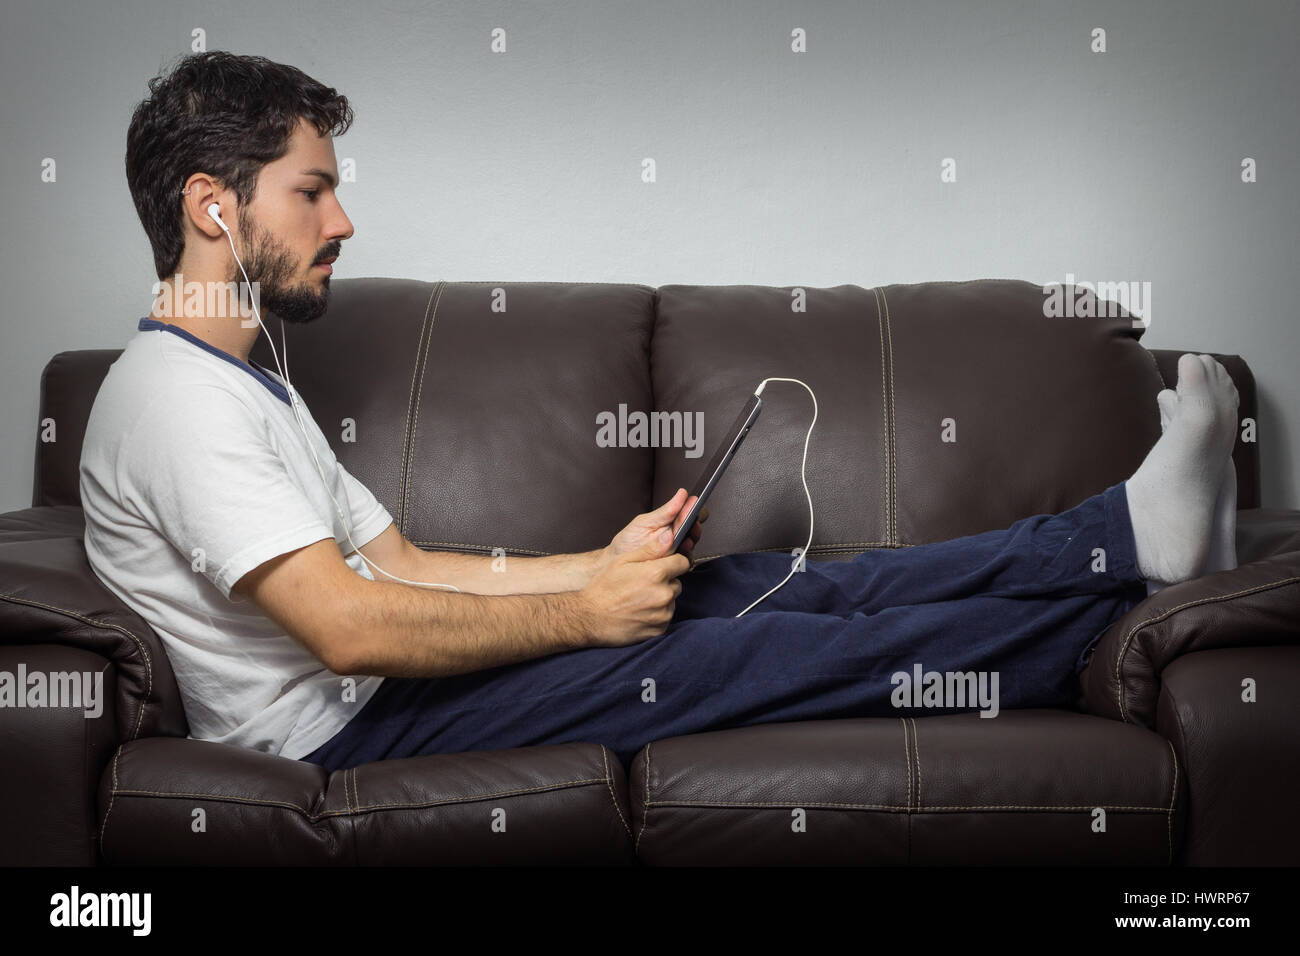 Attractive young man listening to music and browsing the internet with digital tablet on couch. Indoors - Stock Image